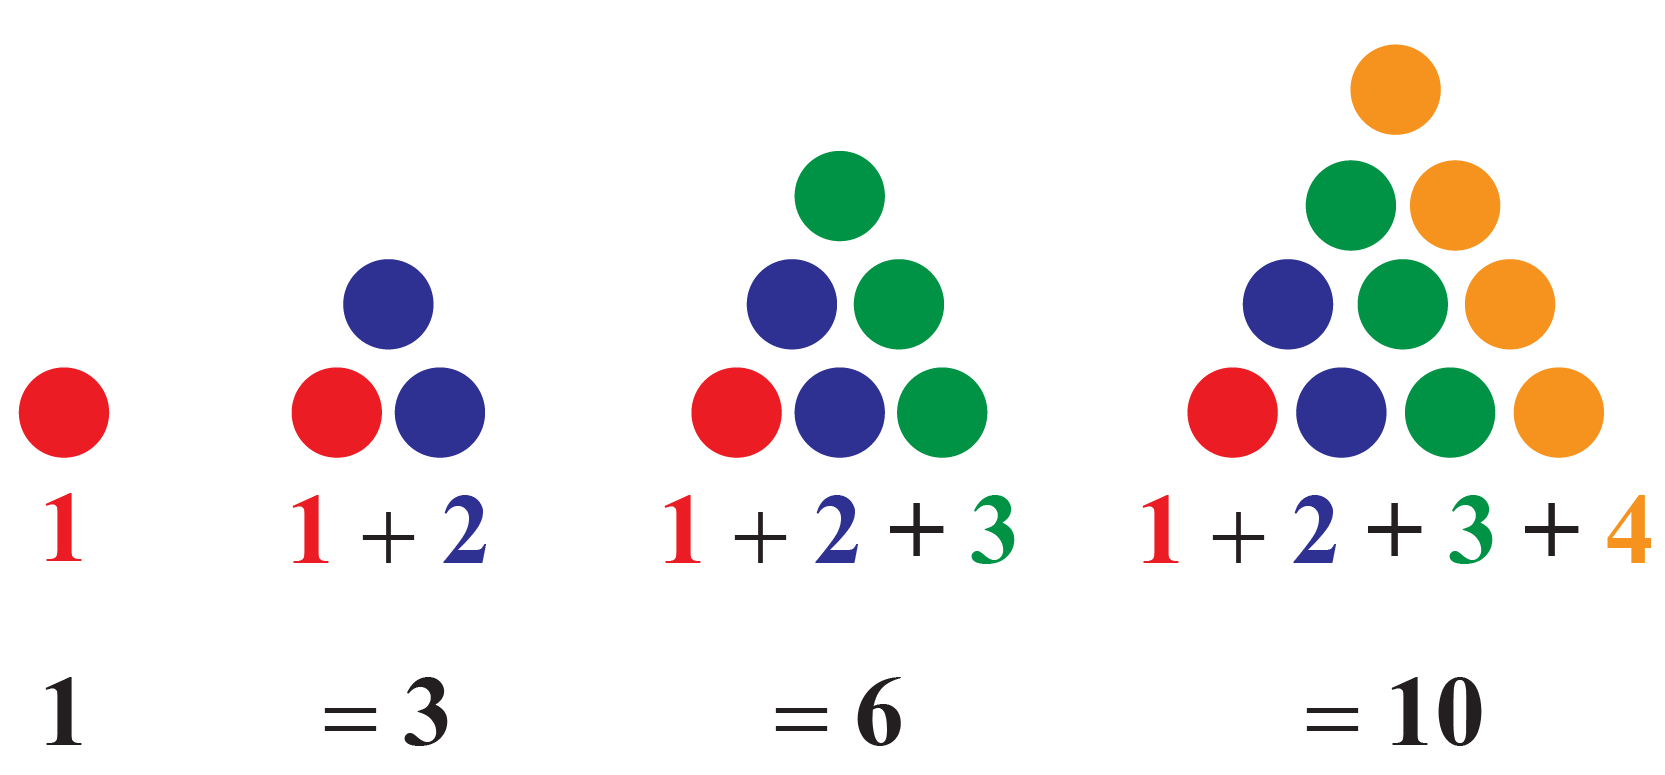 General form of triangular number sequence